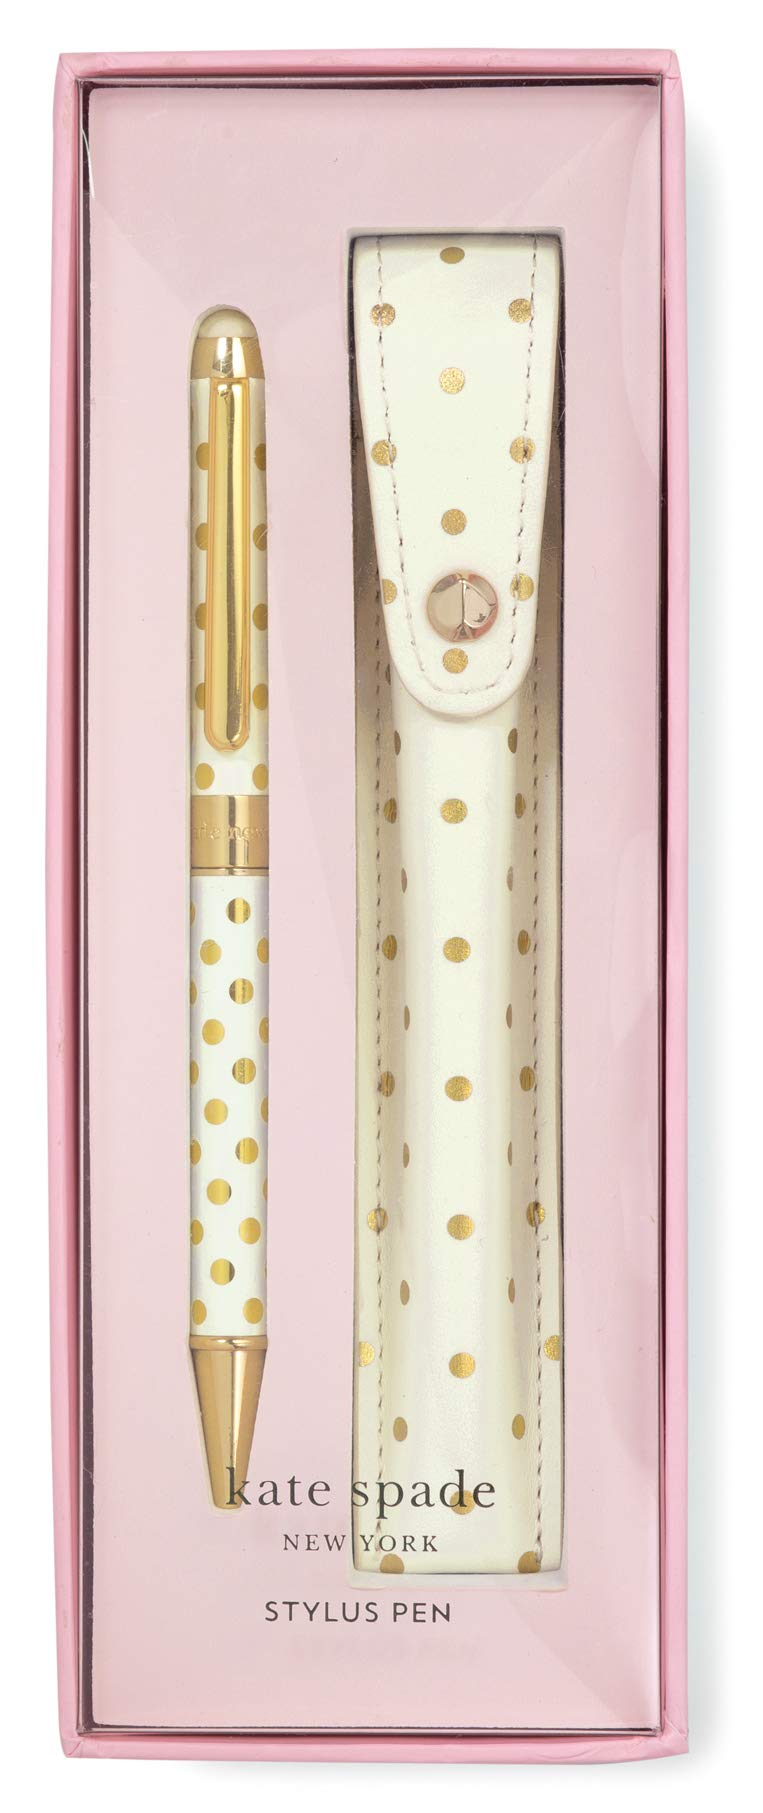 Kate Spade New York Black Ink Pen with Stylus Tip (Gold Dots)